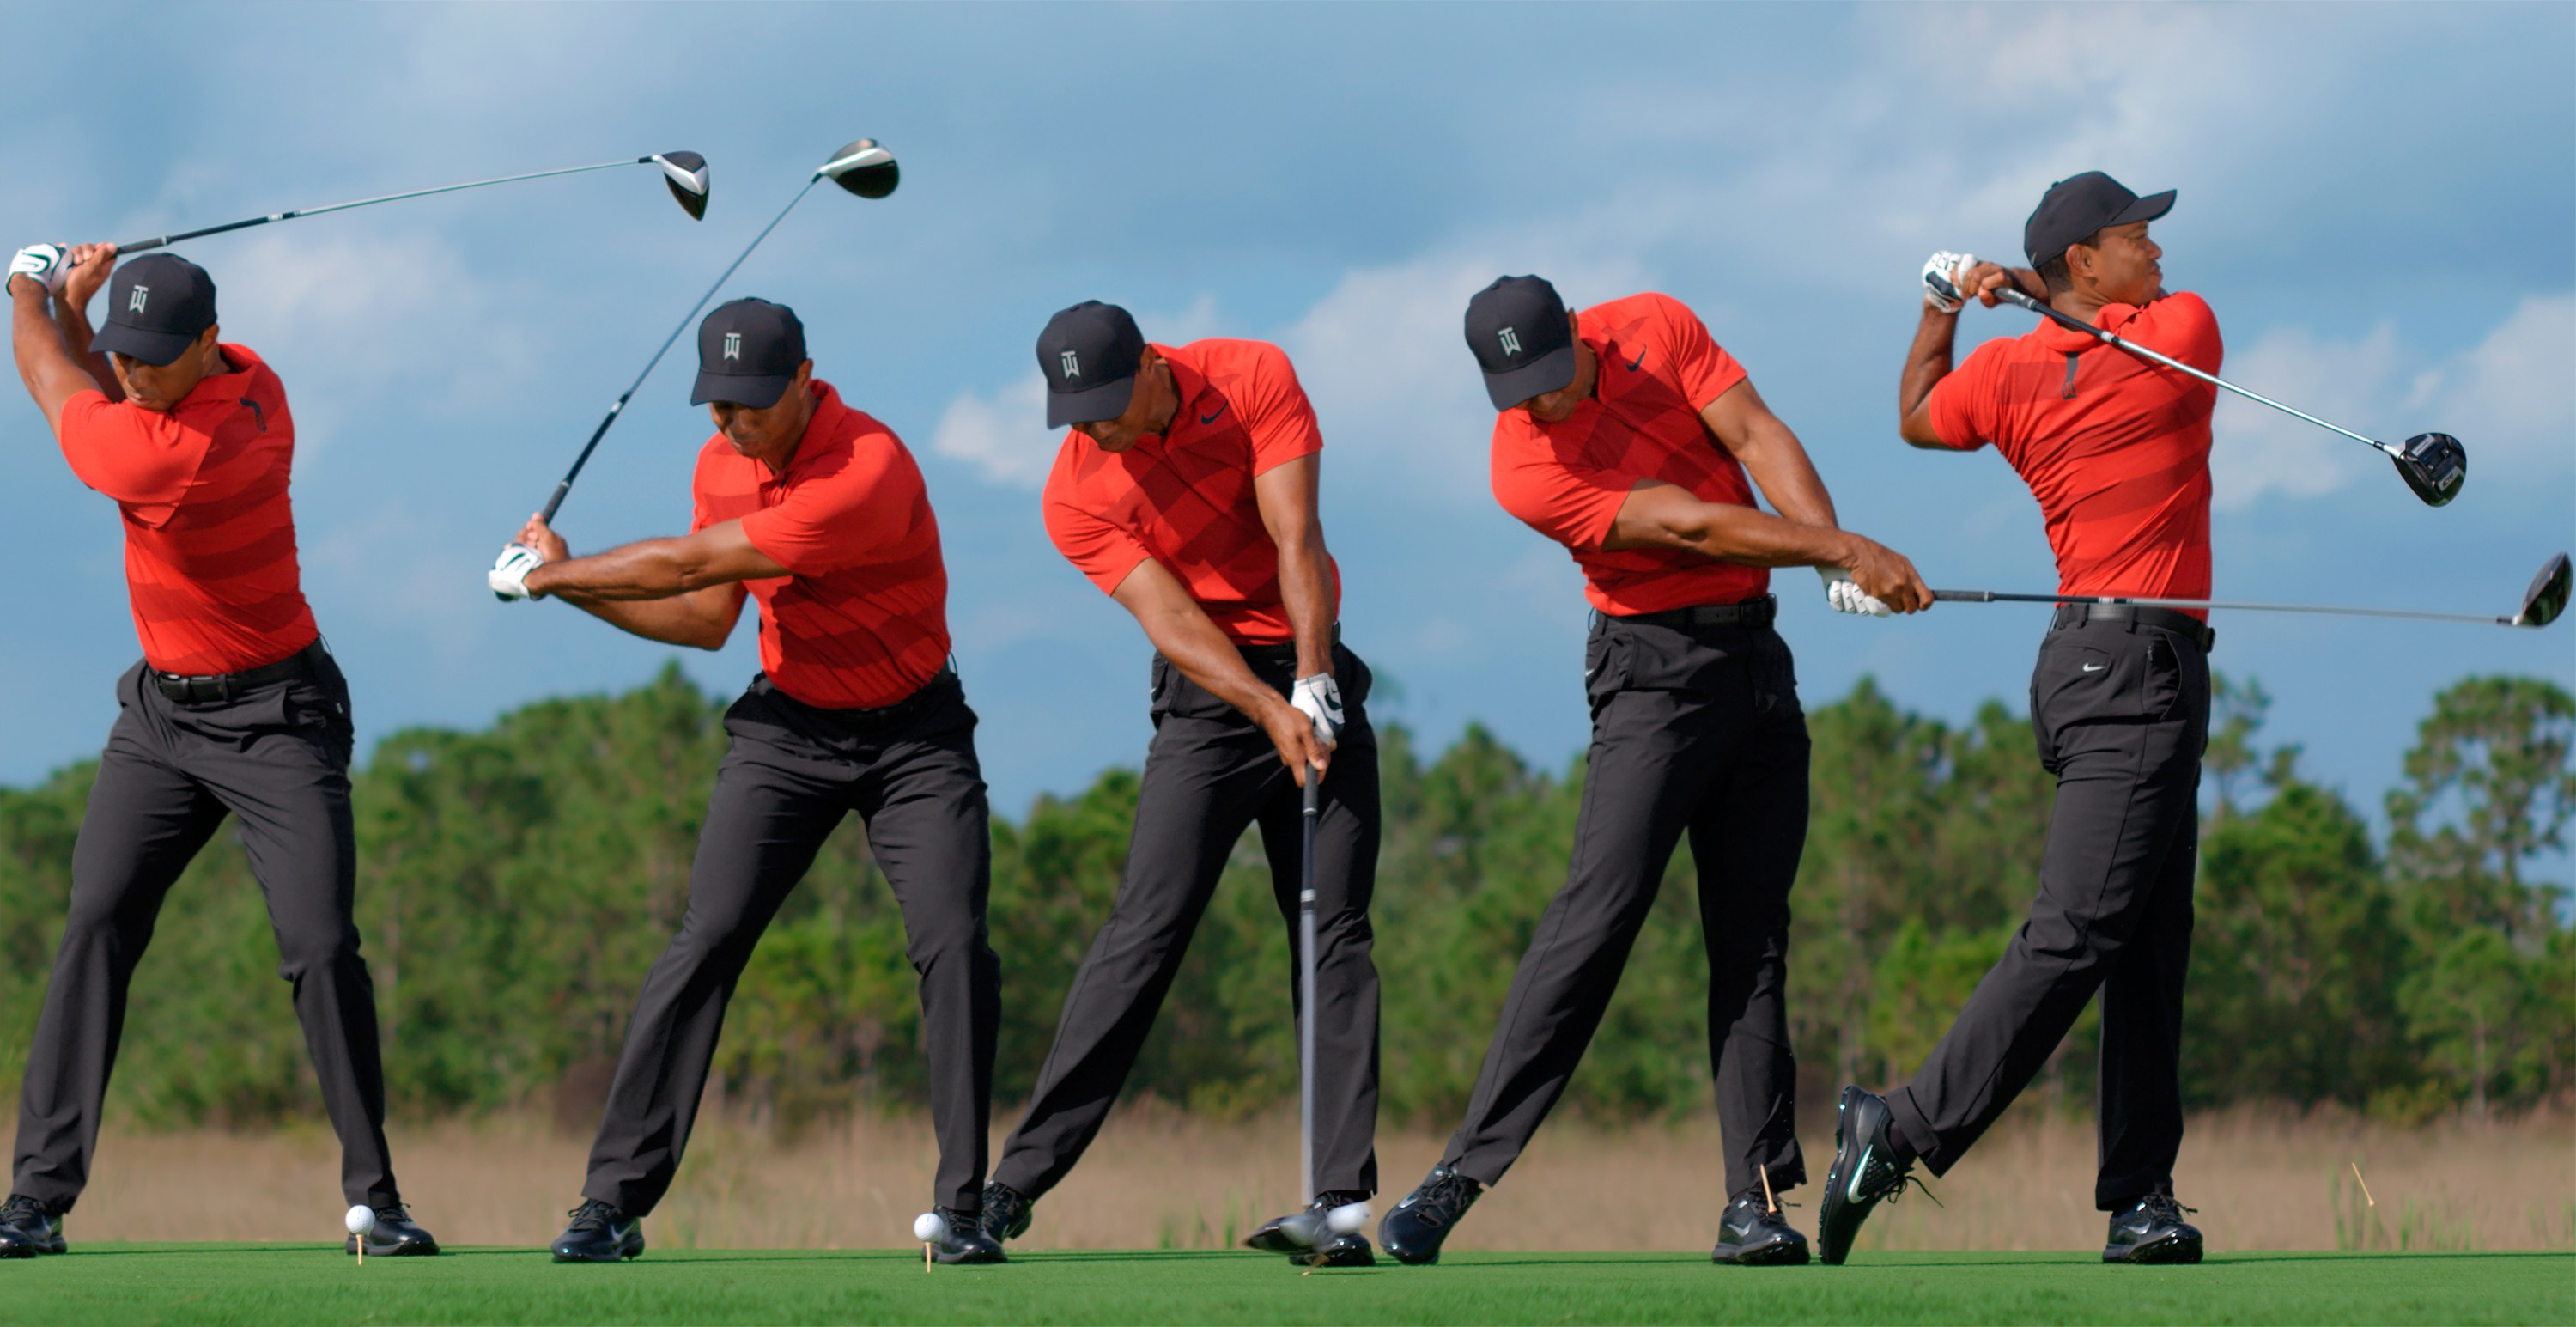 Tips to Improve Your Golf Swing to Flat